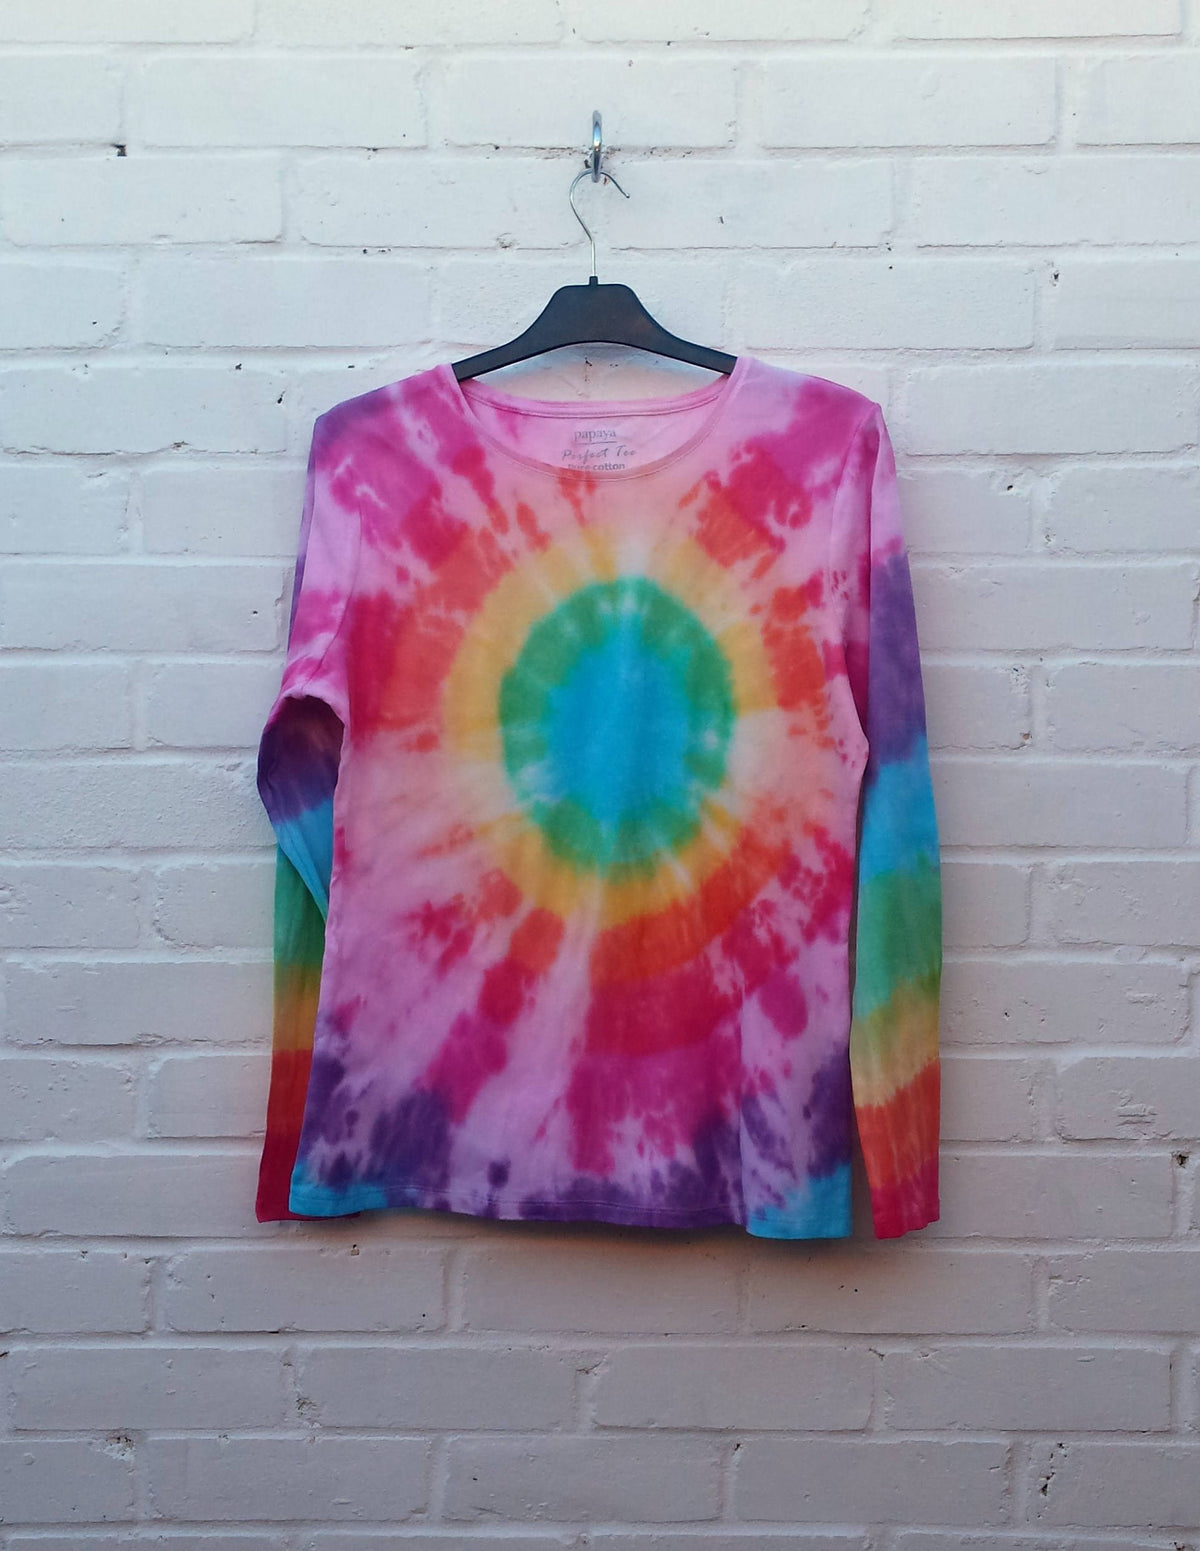 Rainbow Tie Dye Top Long Sleeve Womens Top ALL SIZES Festival Clothing Hippie Bohemian LGBT Pride